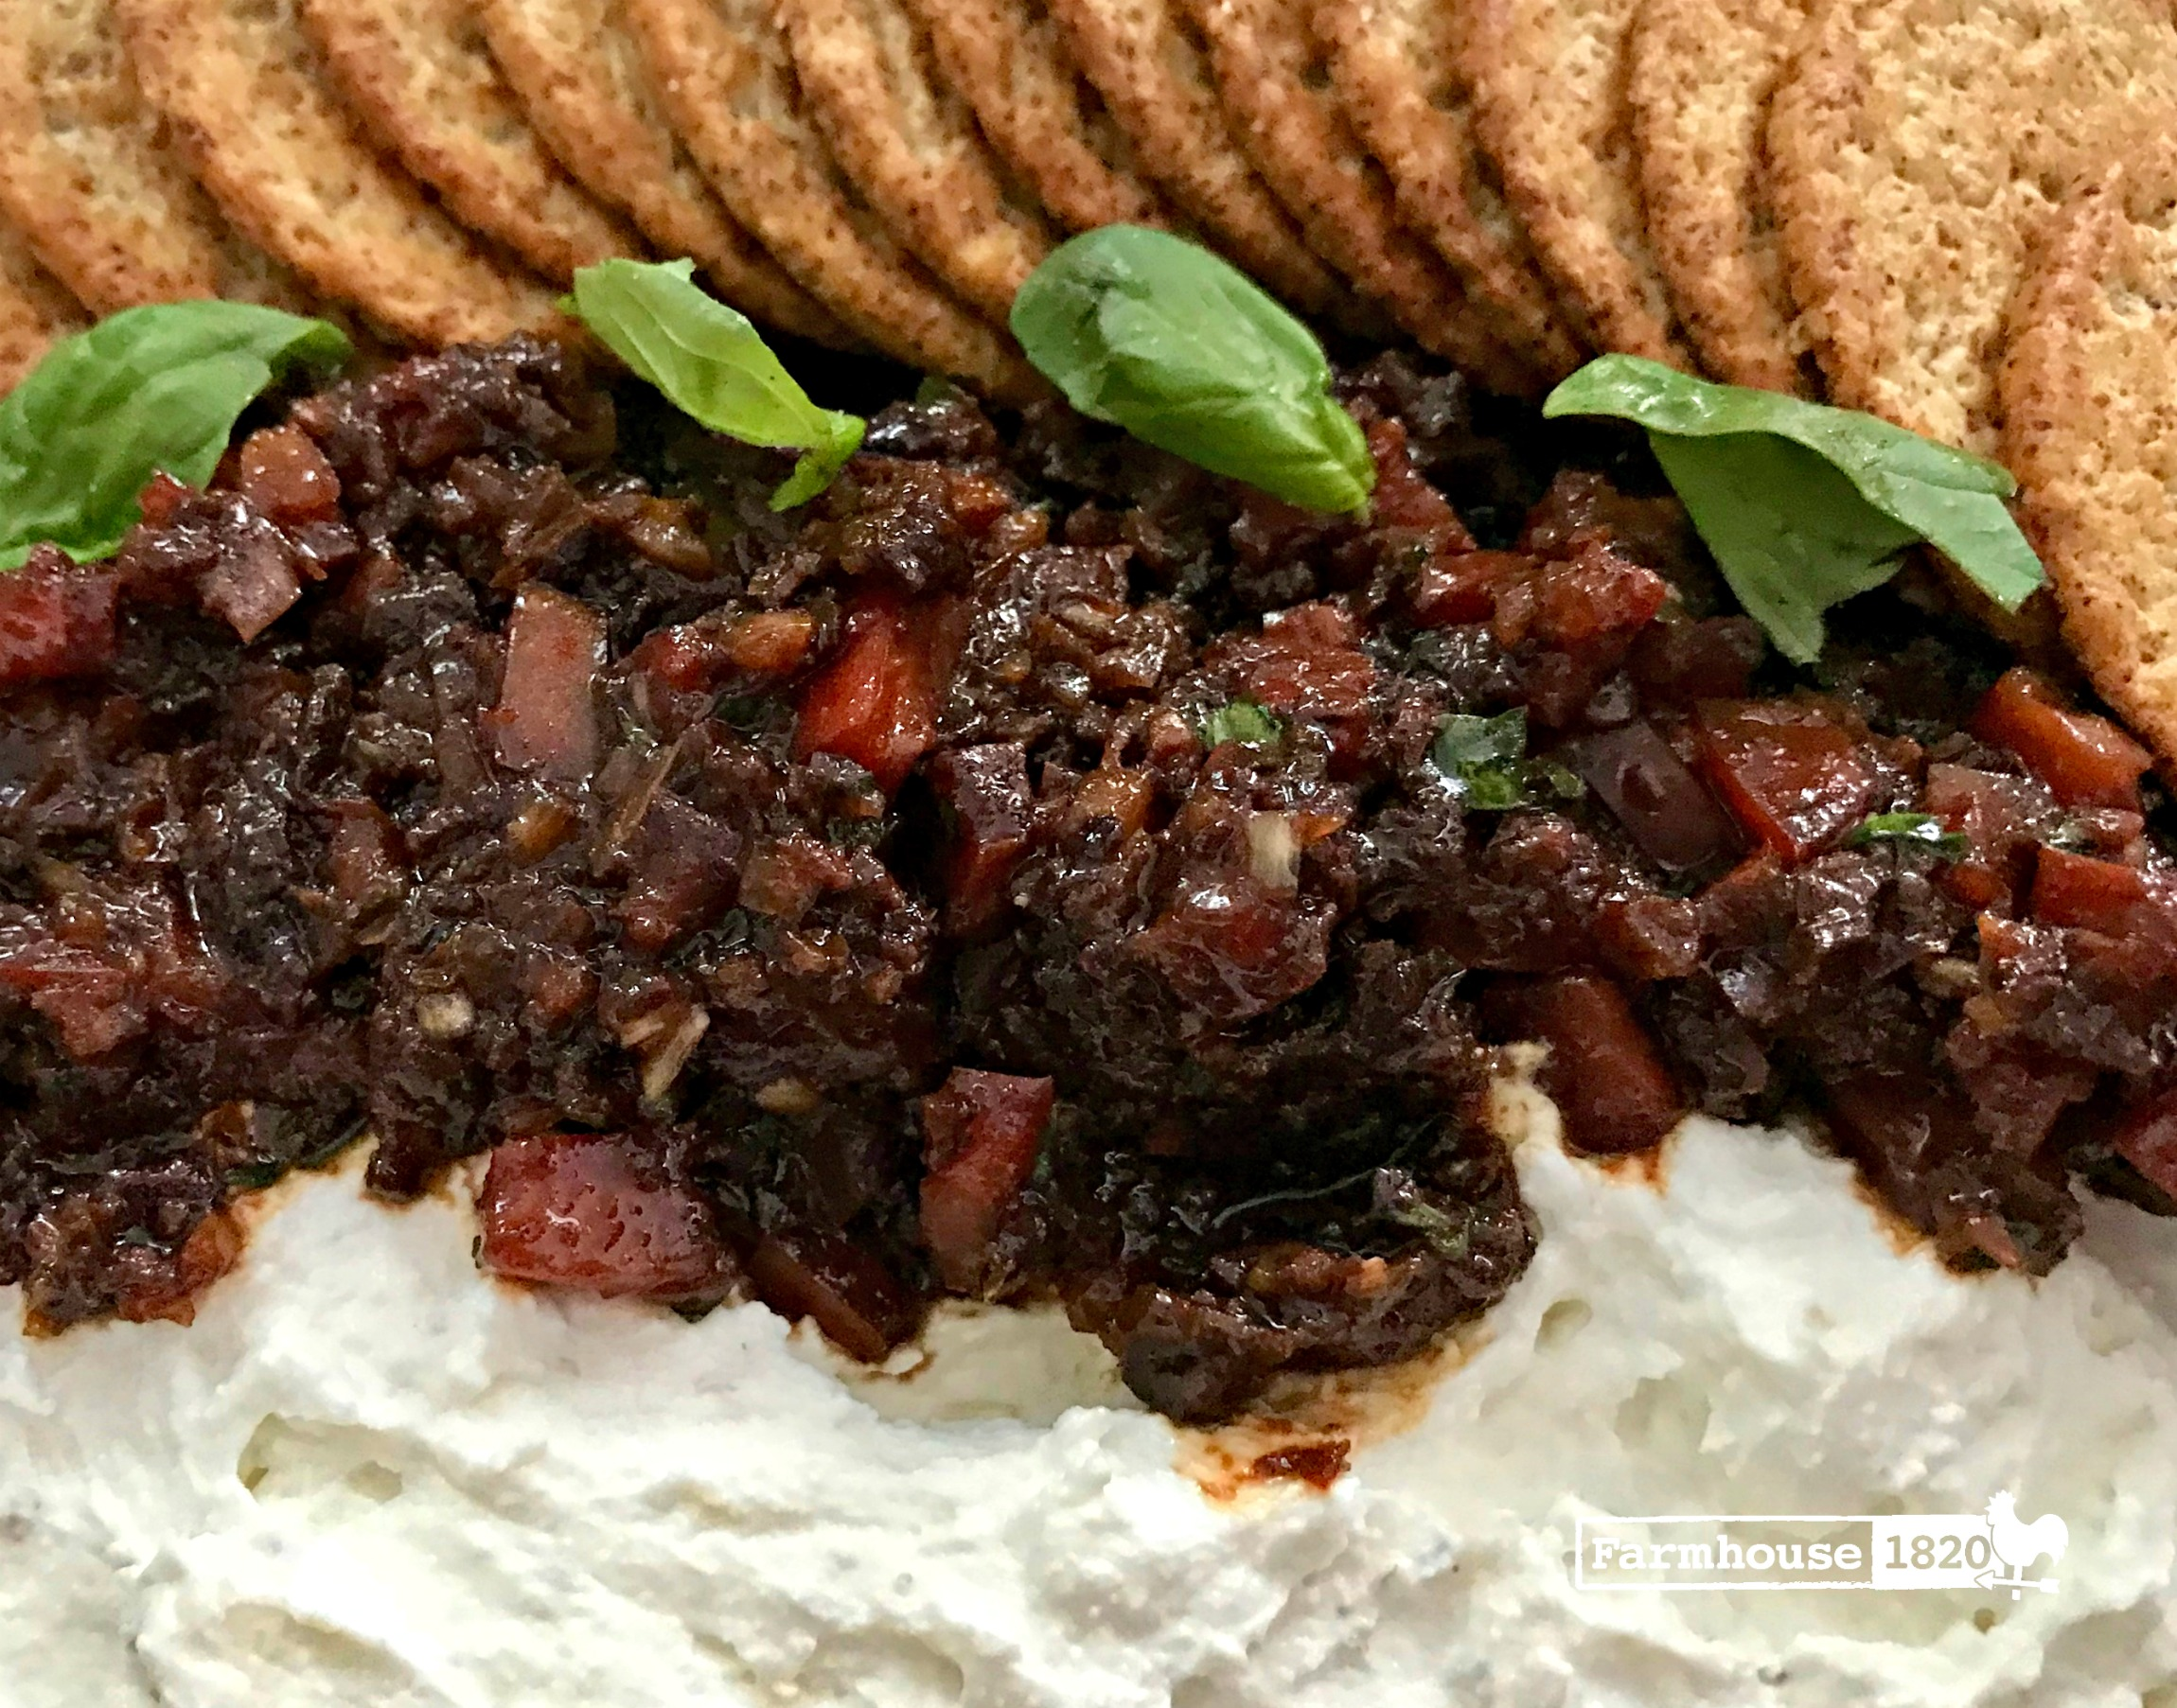 Ricotta Goat Cheese Spread with Sundried Tomato Salsa 2